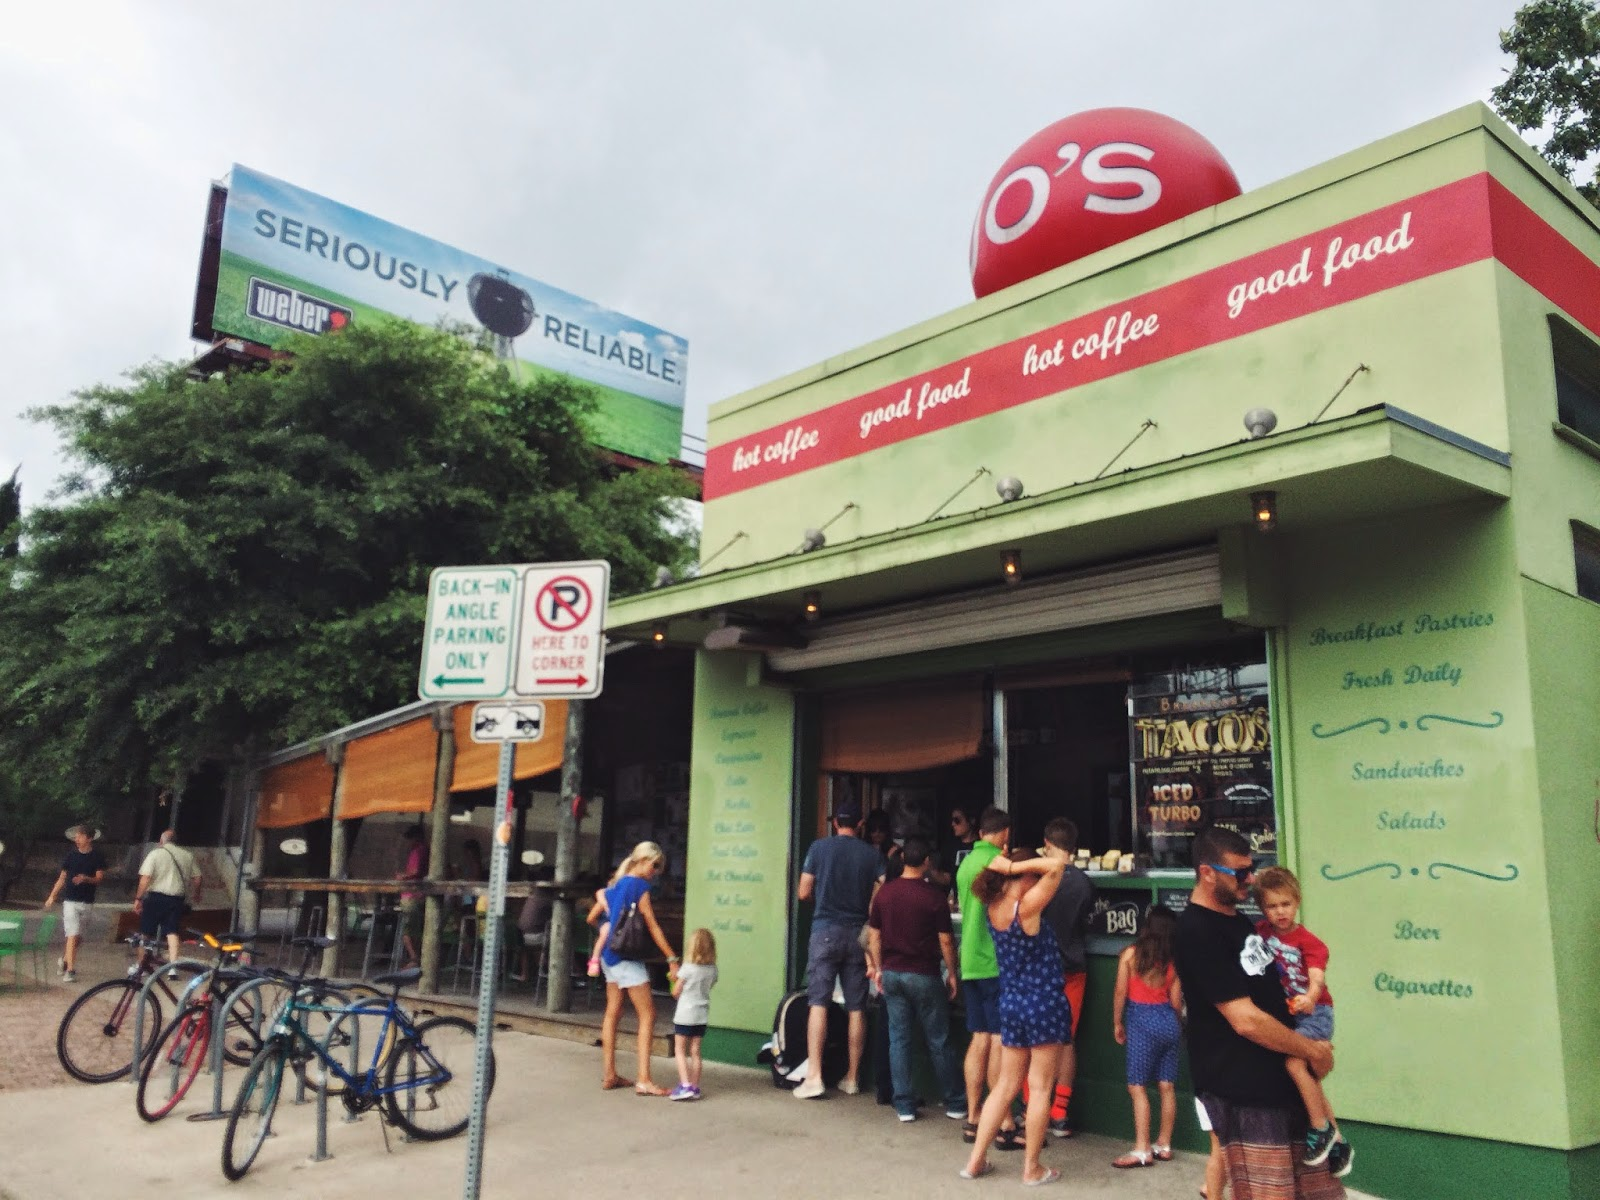 People lining up to eat at a cafe in Austin